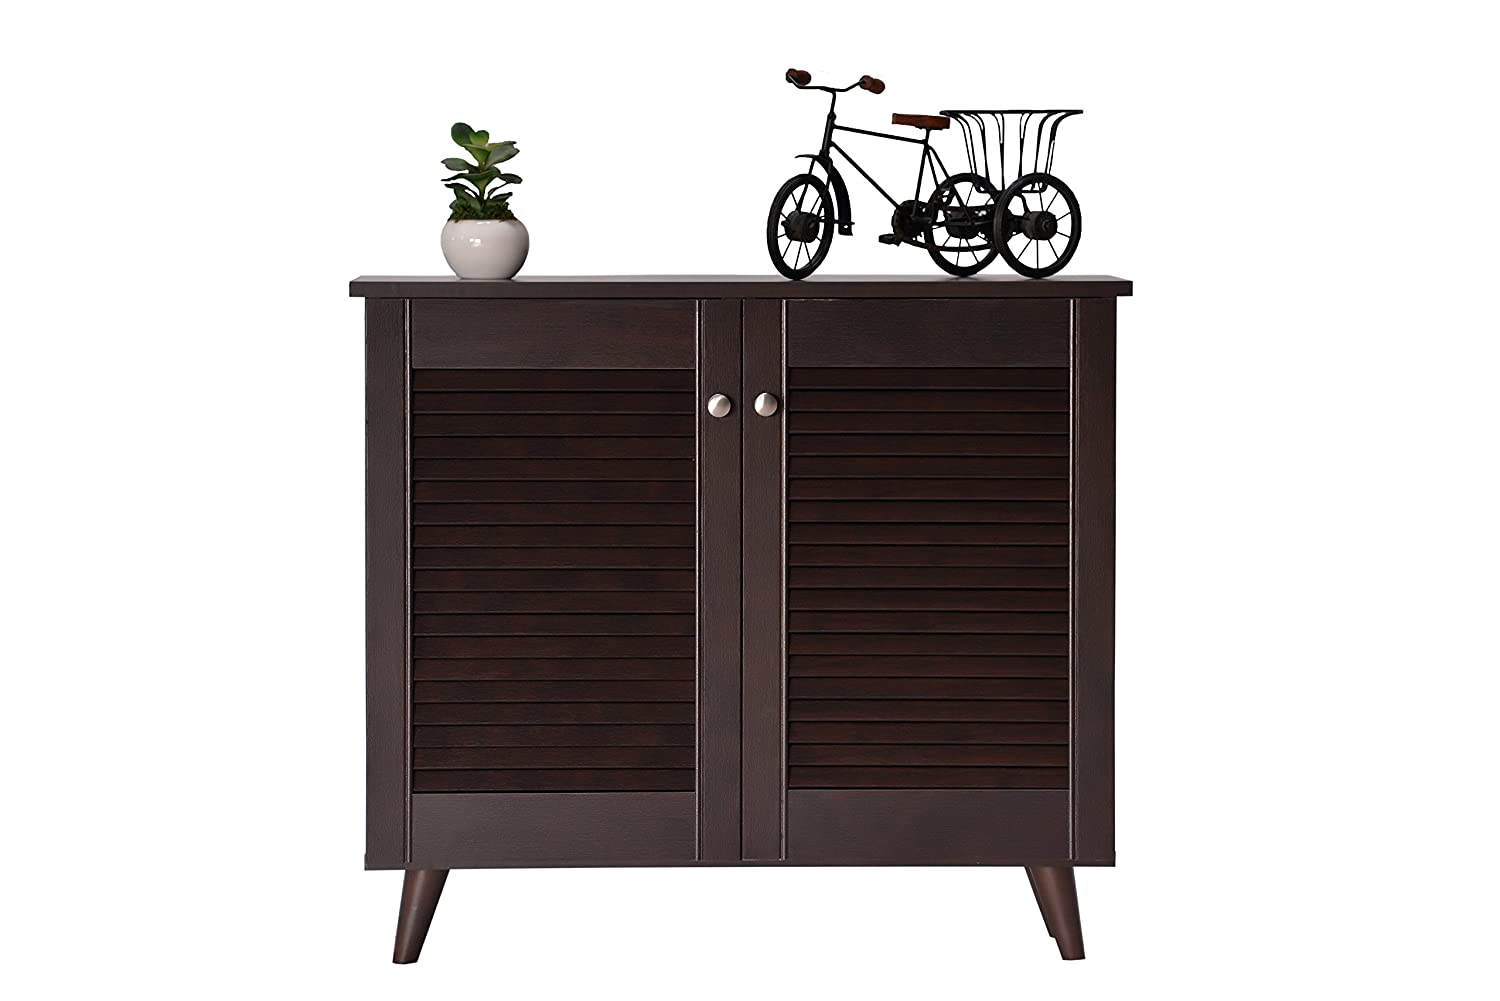 DeckUp Noordin 2-Door Shoe Rack/Cabinet (Dark Wenge, Matte Finish)